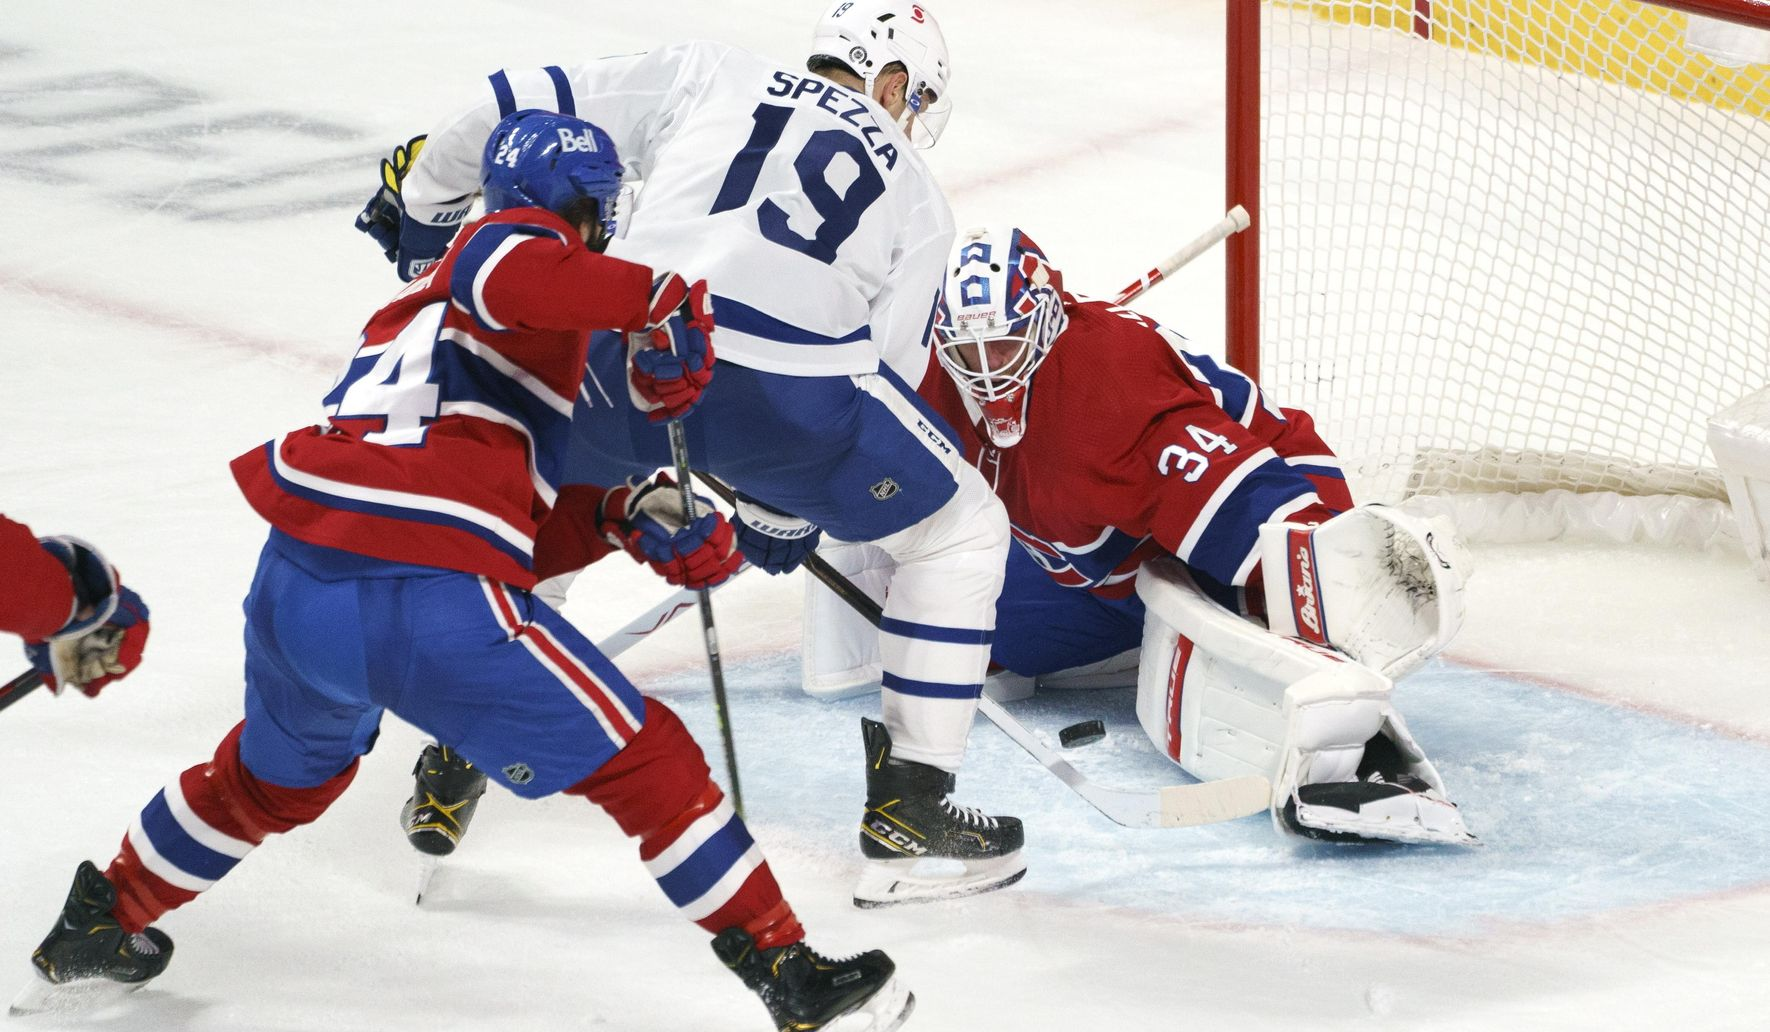 Tatar scores twice, Canadiens beat Maple Leafs 4-2